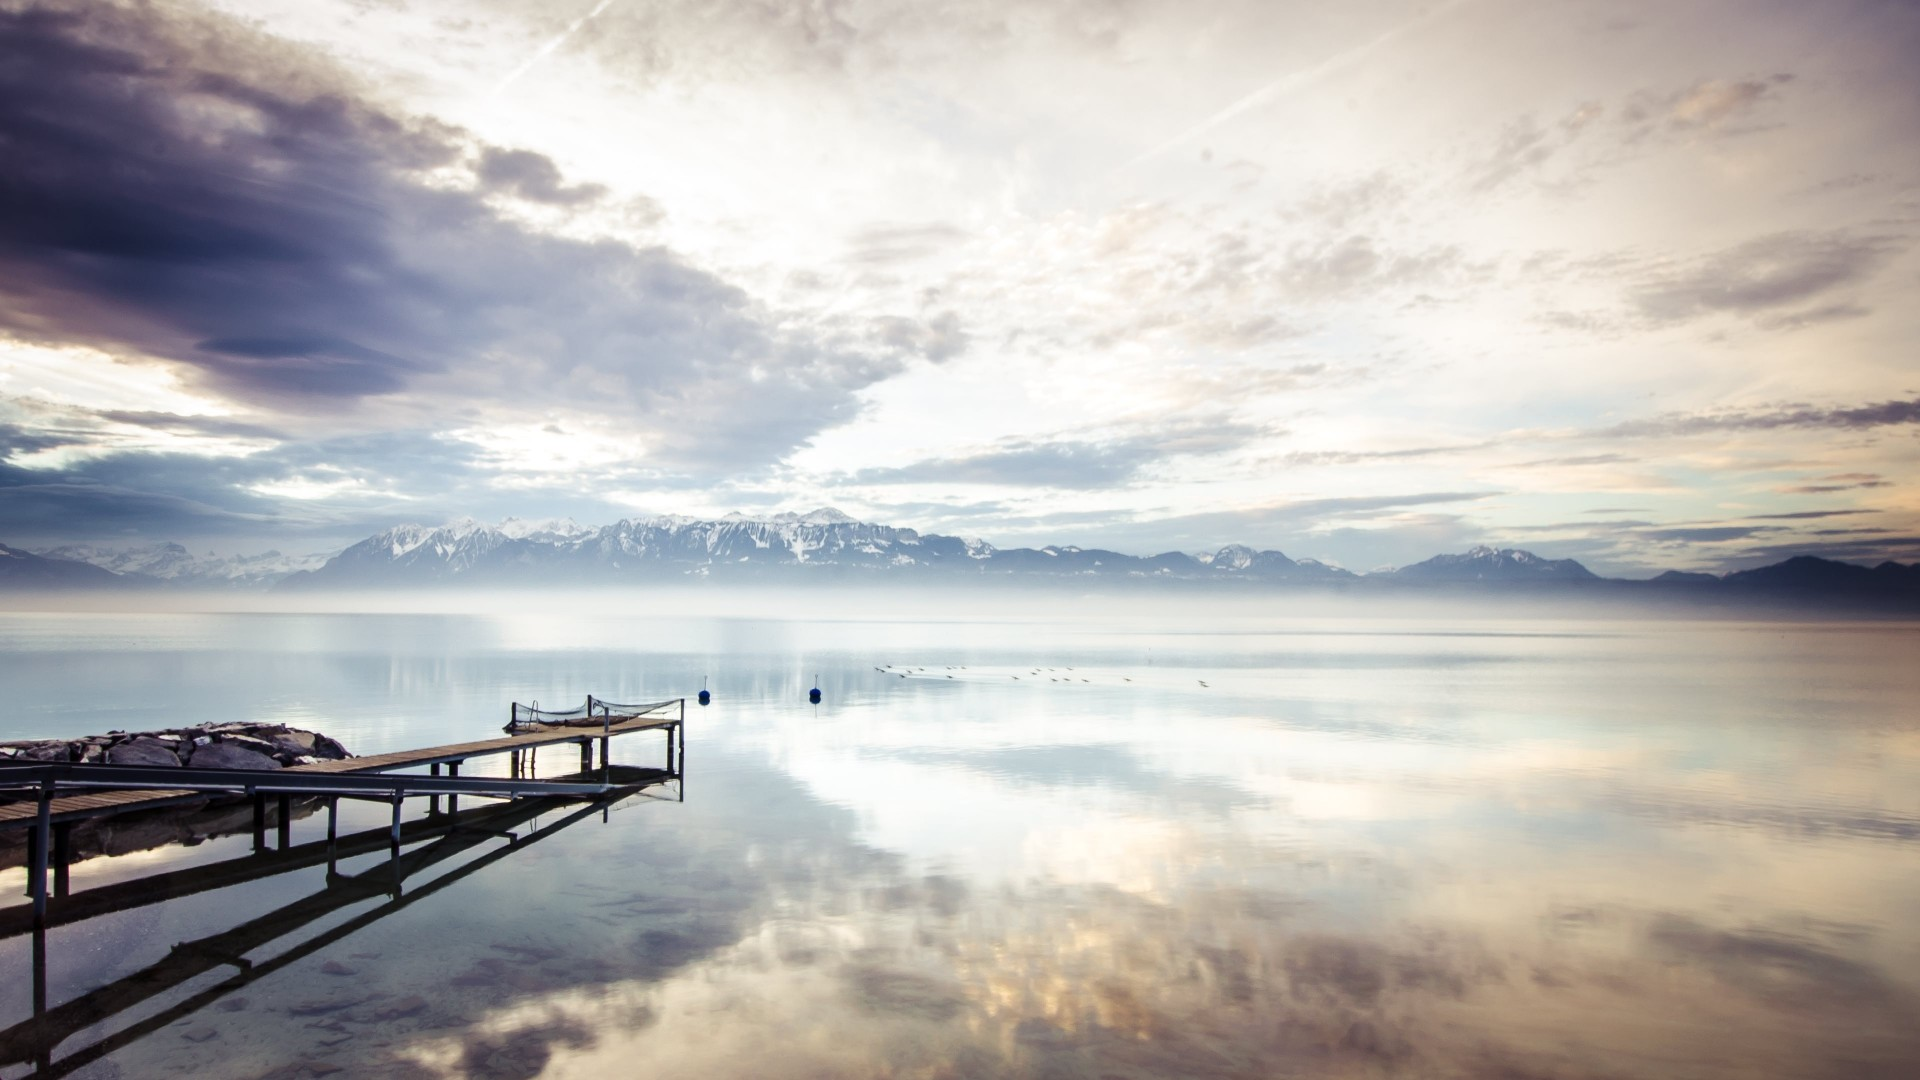 lake, 4k, HD wallpaper, sea, mountains, nature, reflection, water, white, sky, clouds (horizontal)